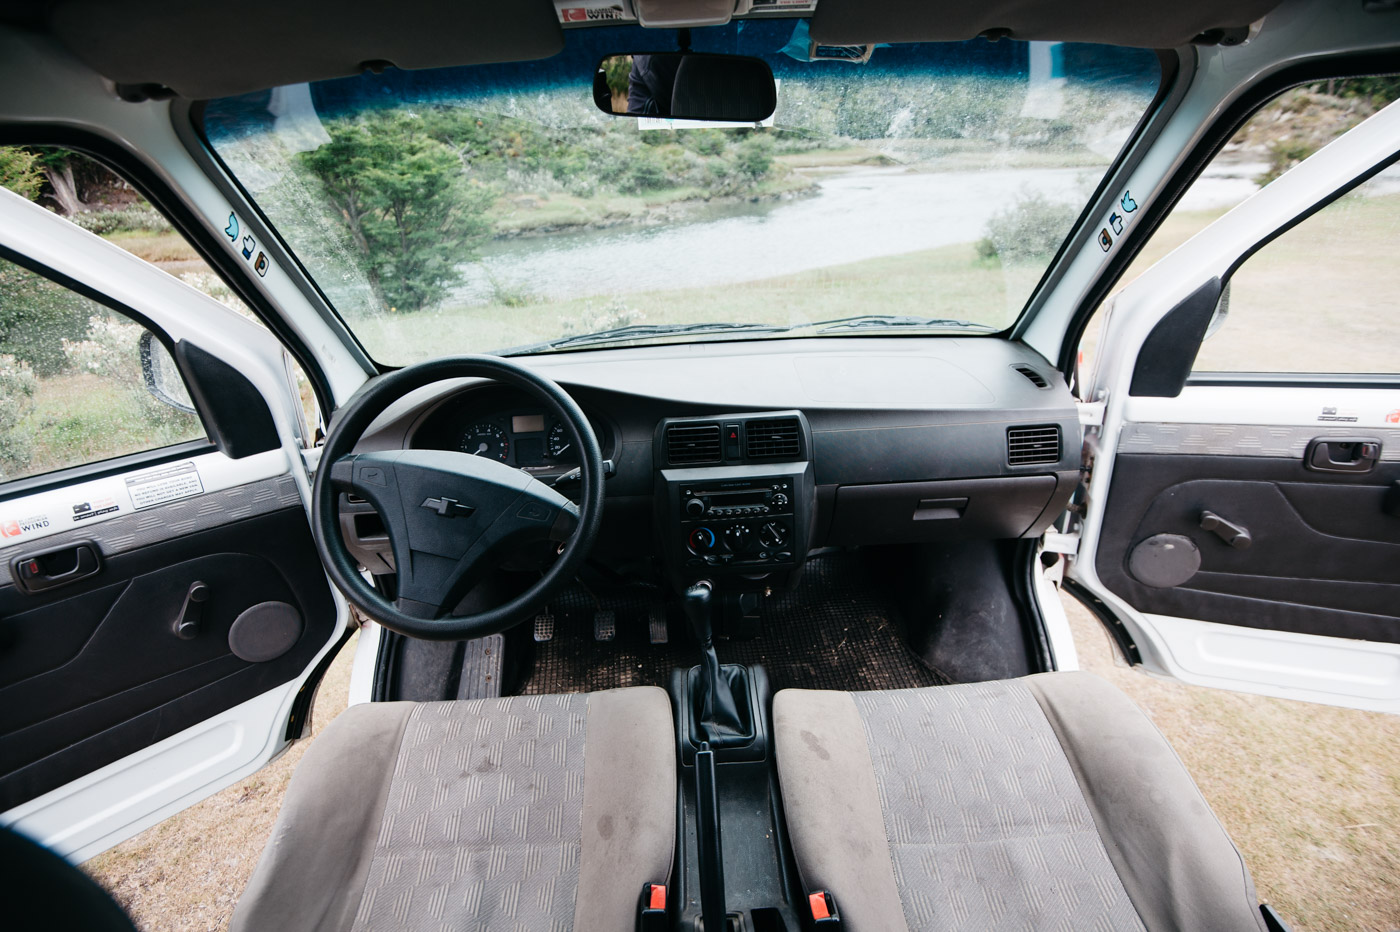 Wicked SouthAmerica Campervan Review Interiour-Cockpit